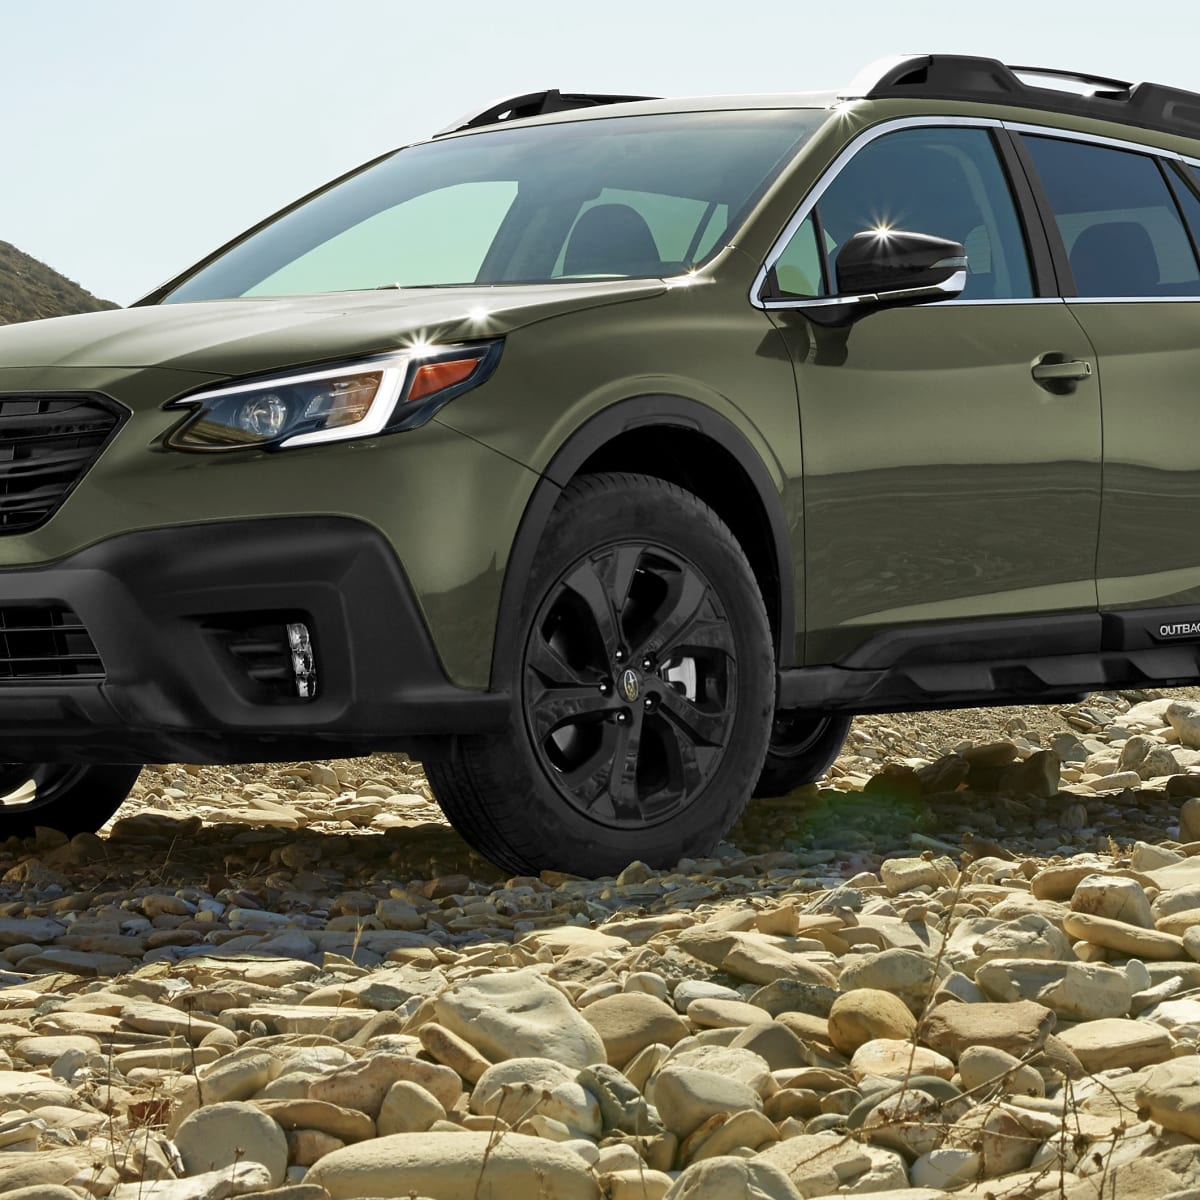 2020 Subaru Outback unveiled: Australian launch late 2019 or